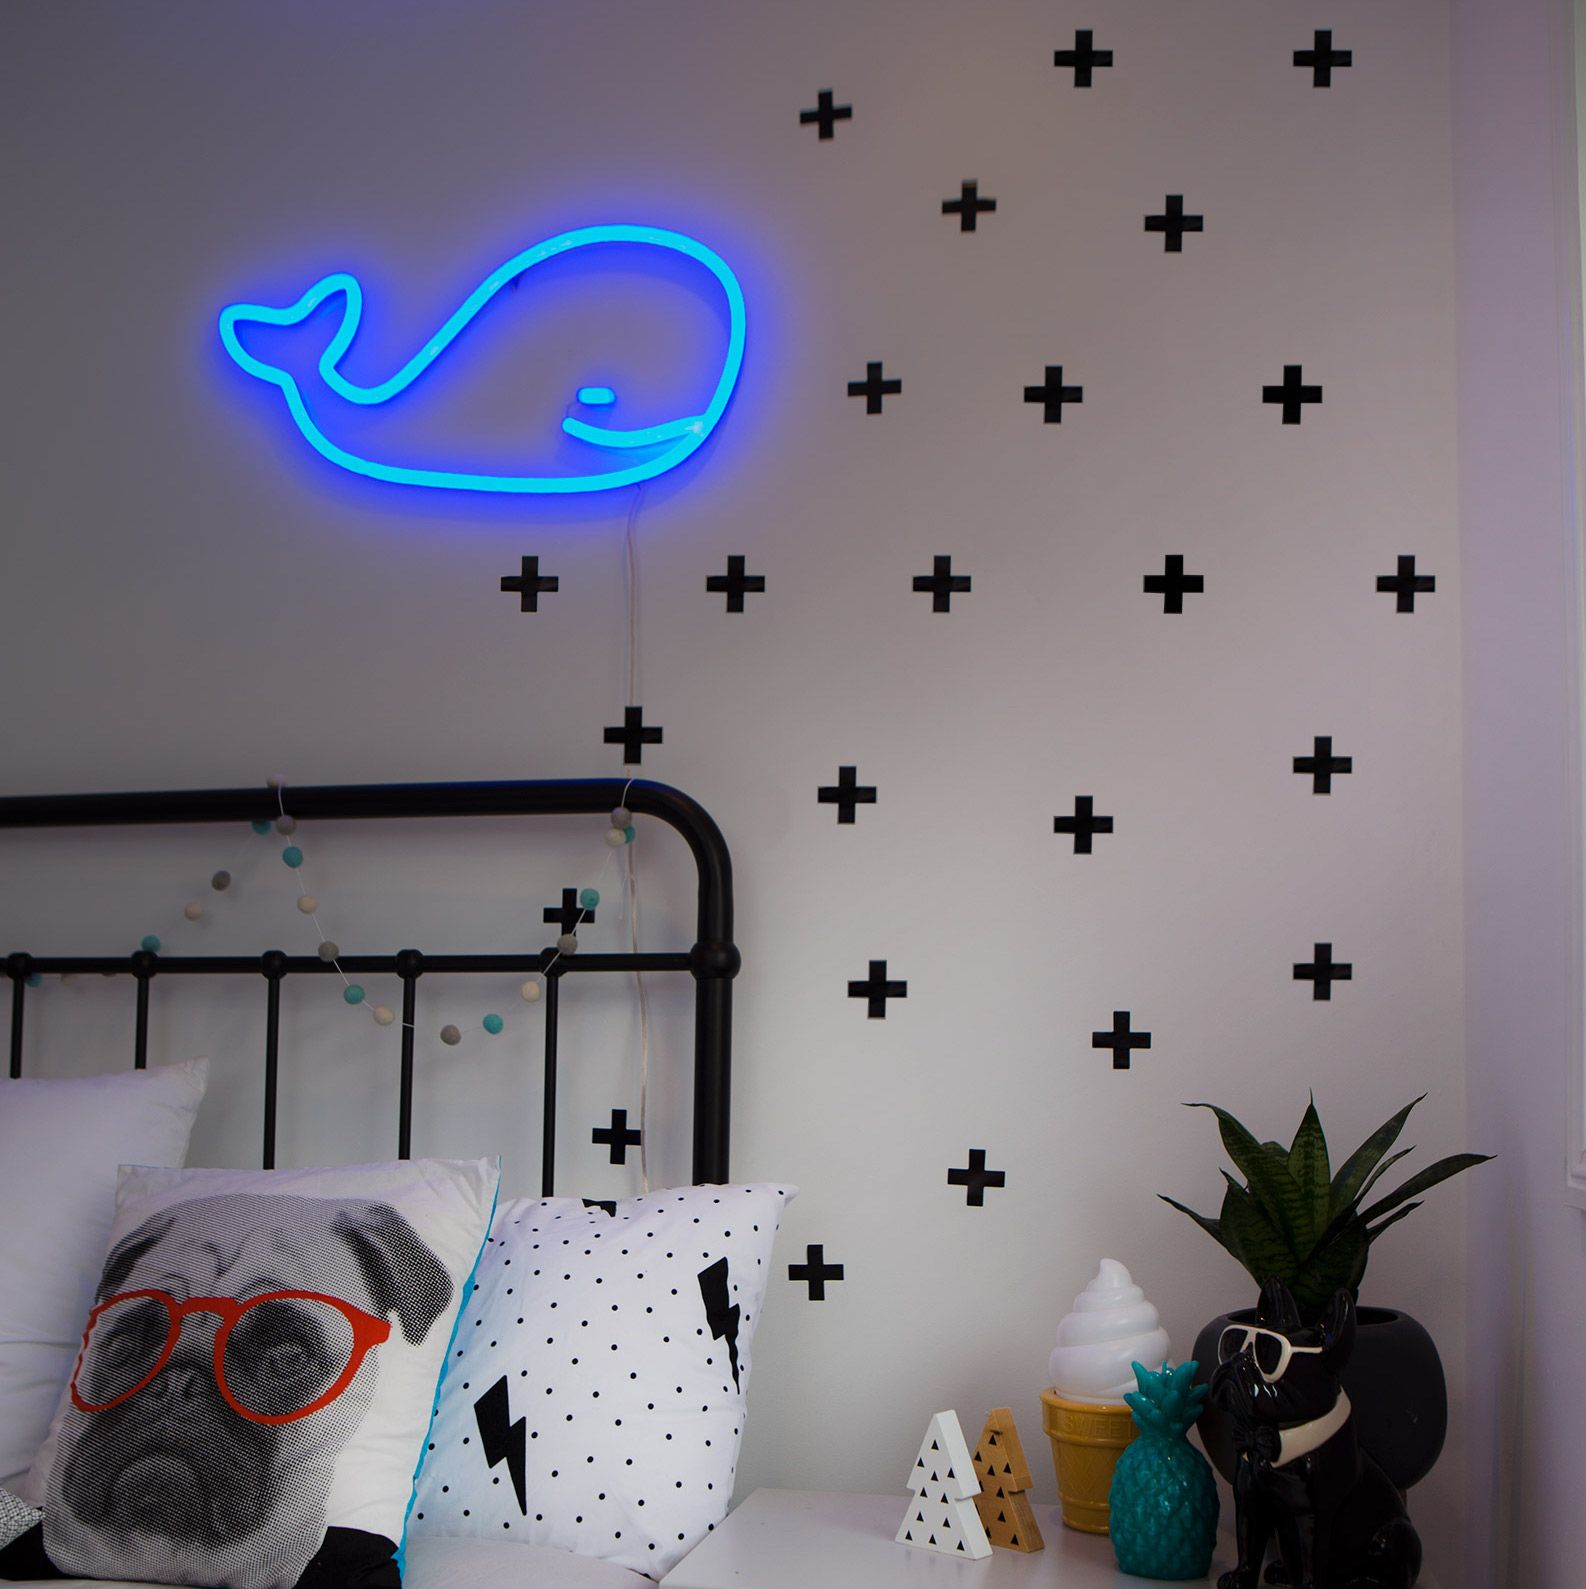 Pin on Neon Signs